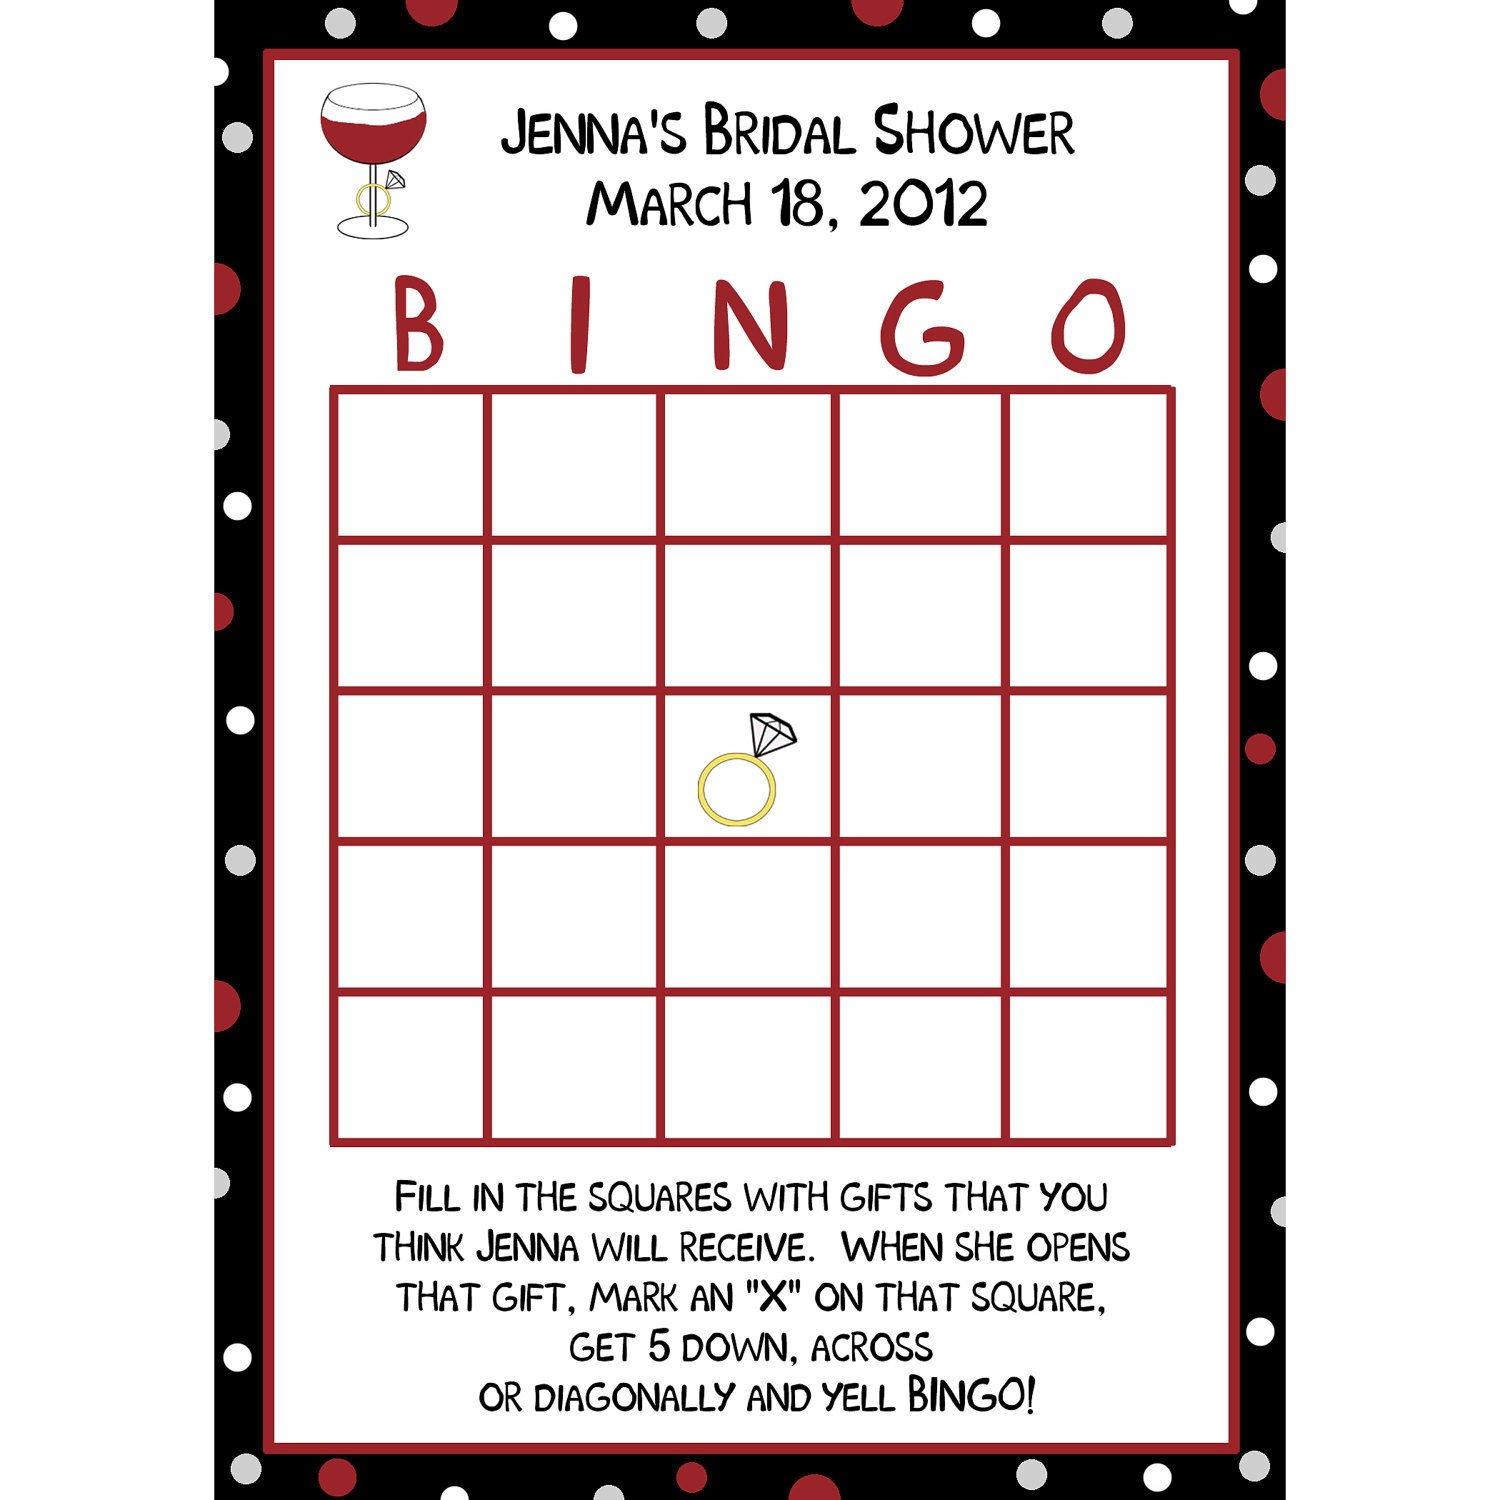 Bridal Shower Bingo Template 24 Personalized Bridal Shower Bingo Cards Wine and Ring